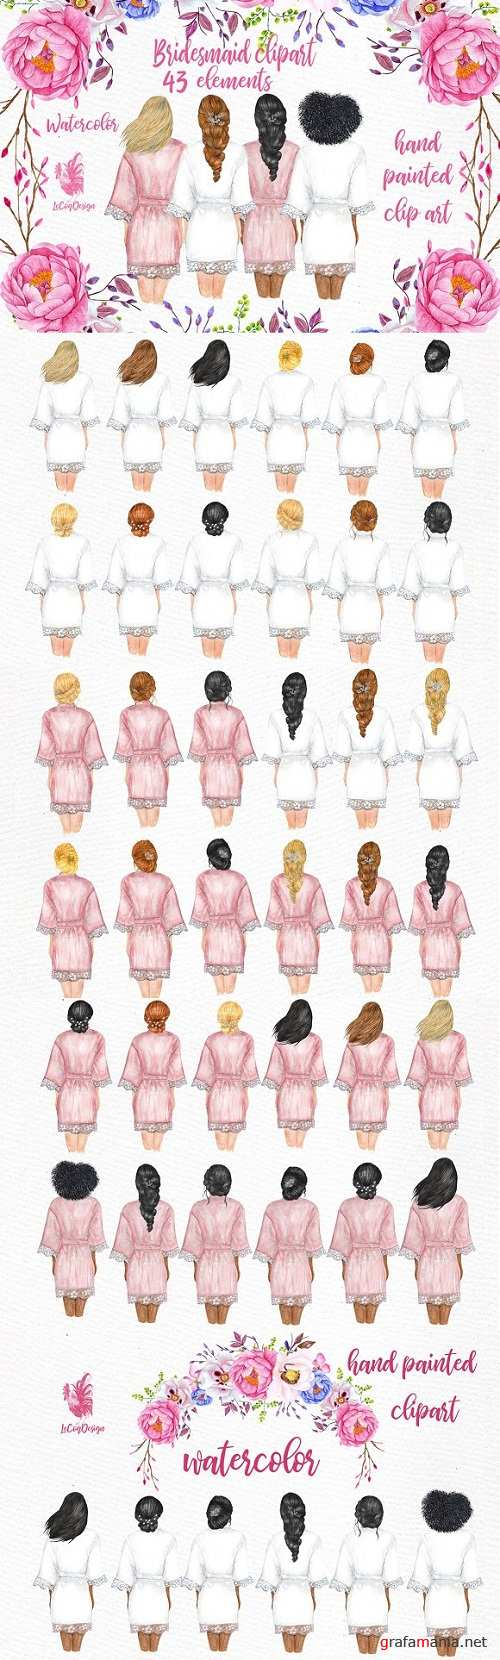 Bridesmaid Wedding Robes clipart - 3425475